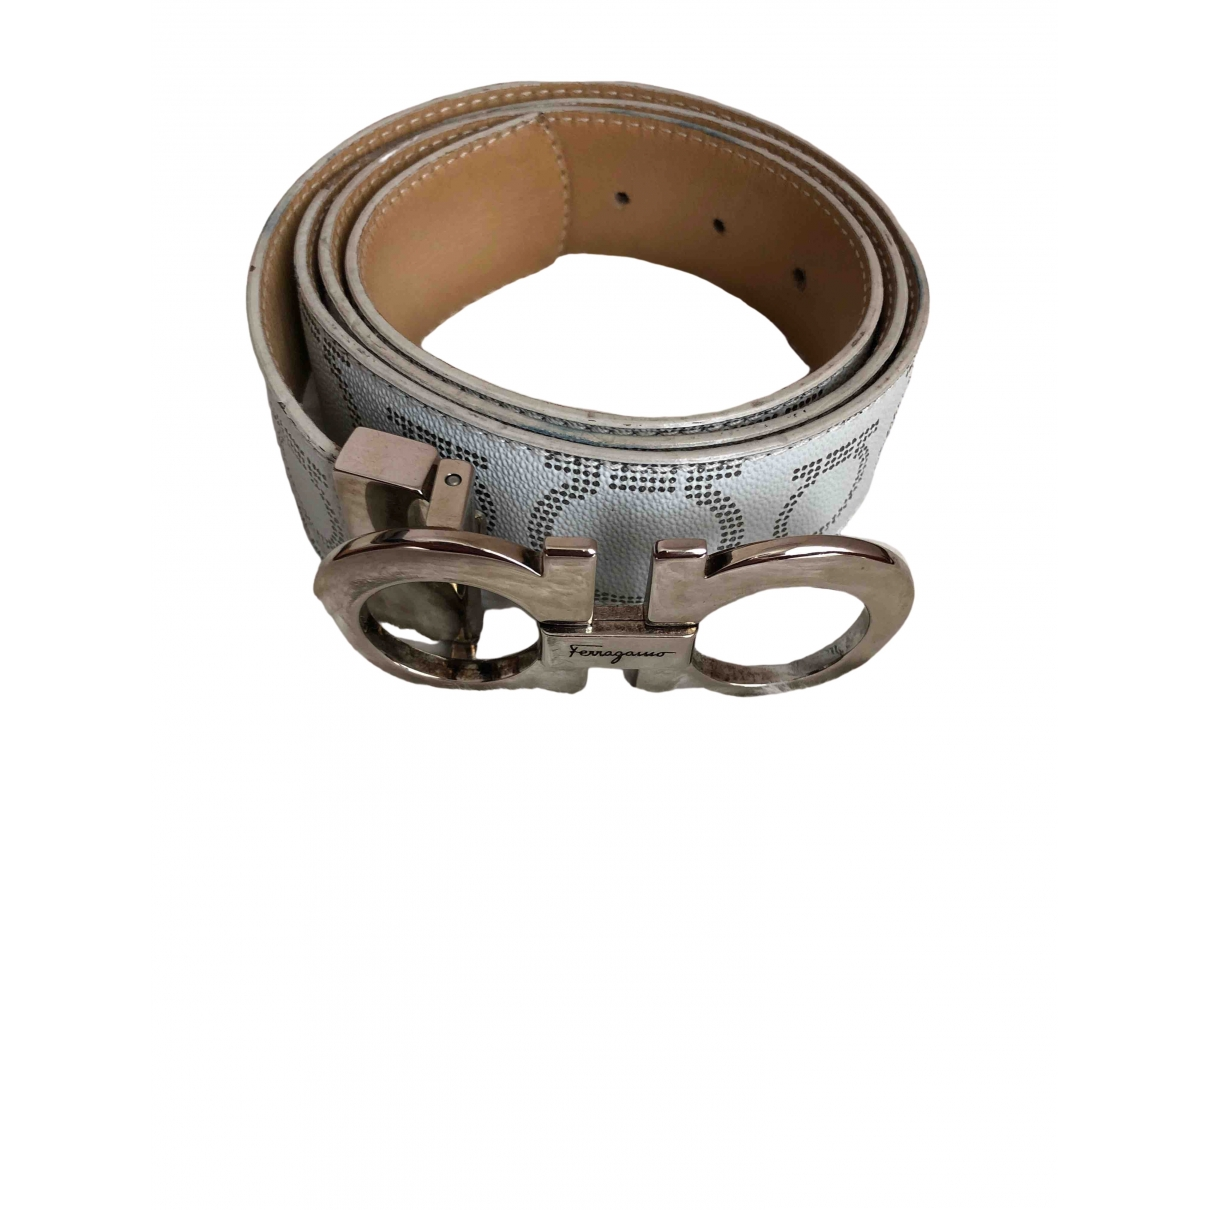 Salvatore Ferragamo \N Grey Leather belt for Women 95 cm